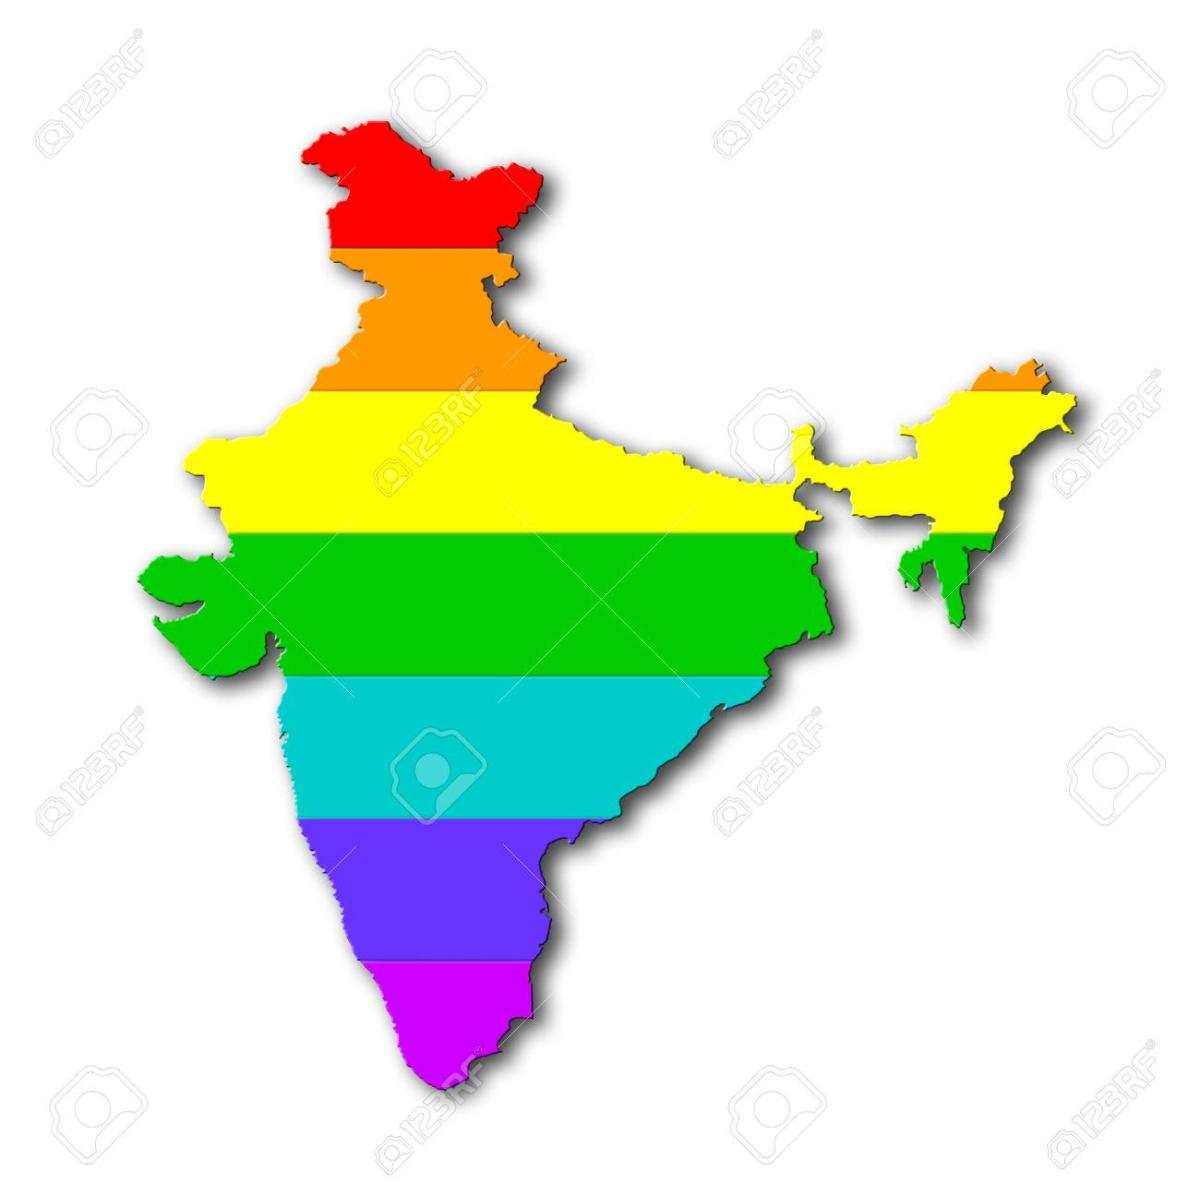 31782275-India-Map-filled-with-a-rainbow-flag-pattern-Stock-Photo.jpg